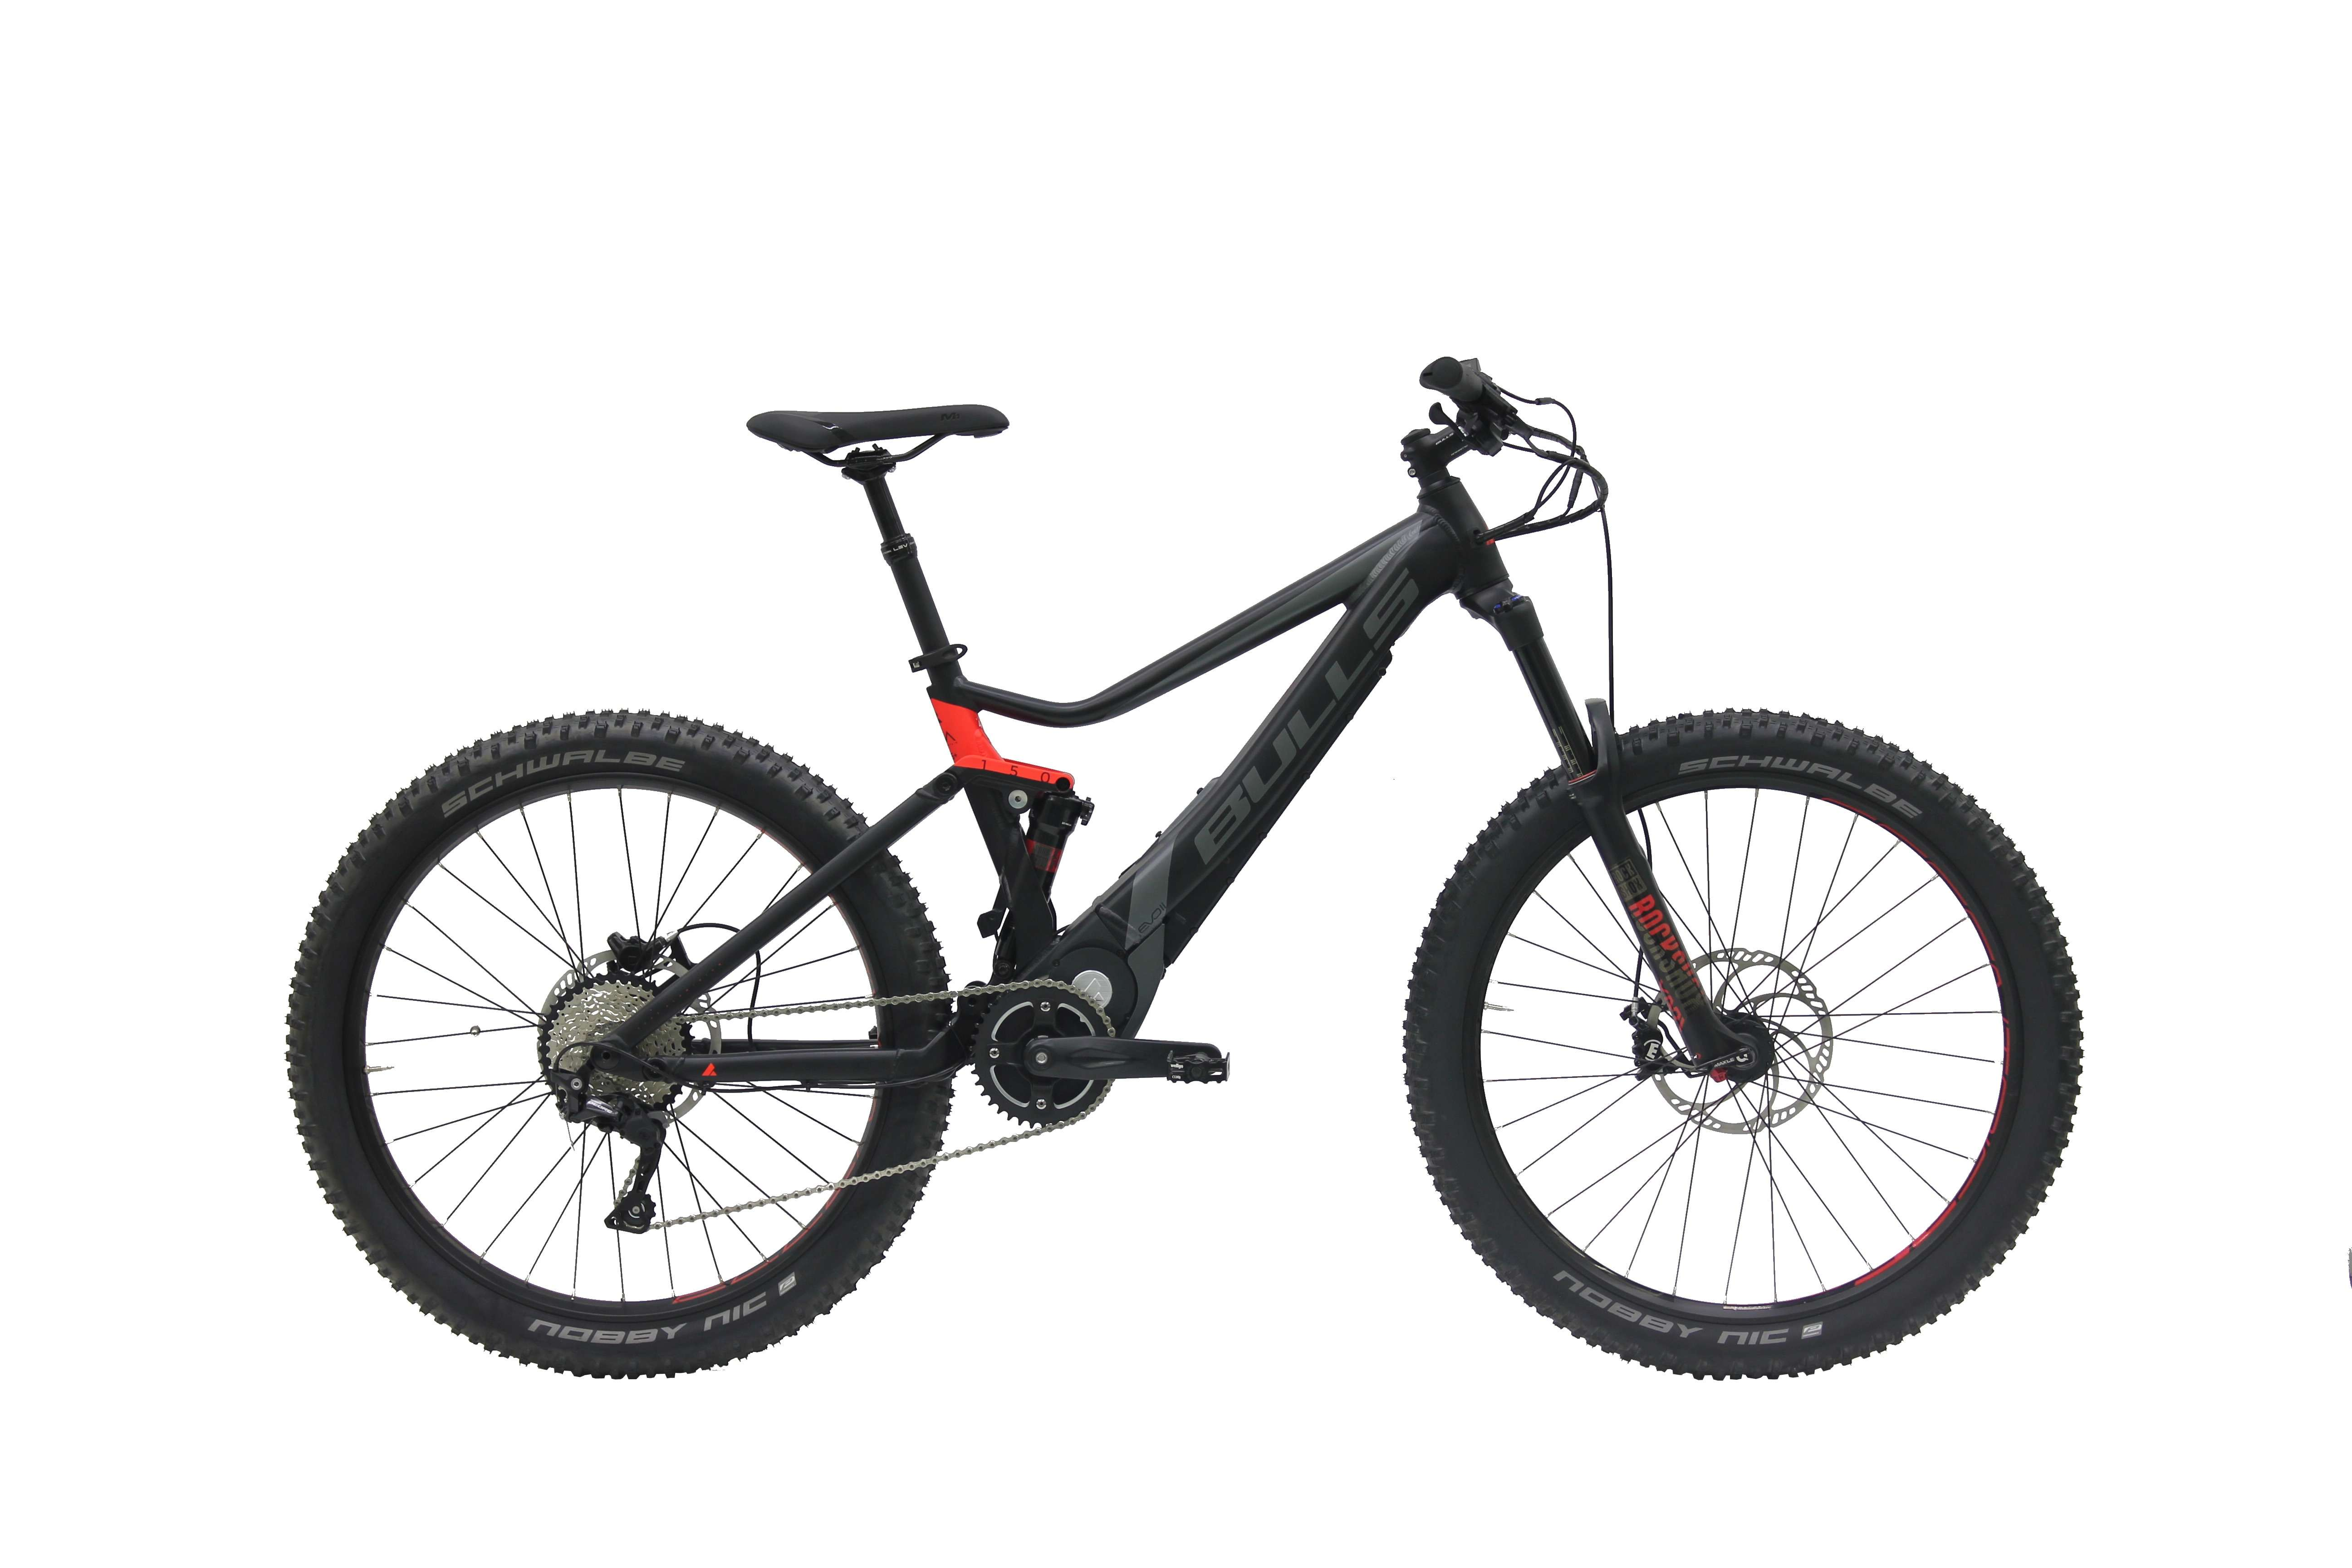 Bulls bikes, Arizona electric bike dealers, Bulls bikes, Bulls electric bikes, Bulls bicycles, Bulls